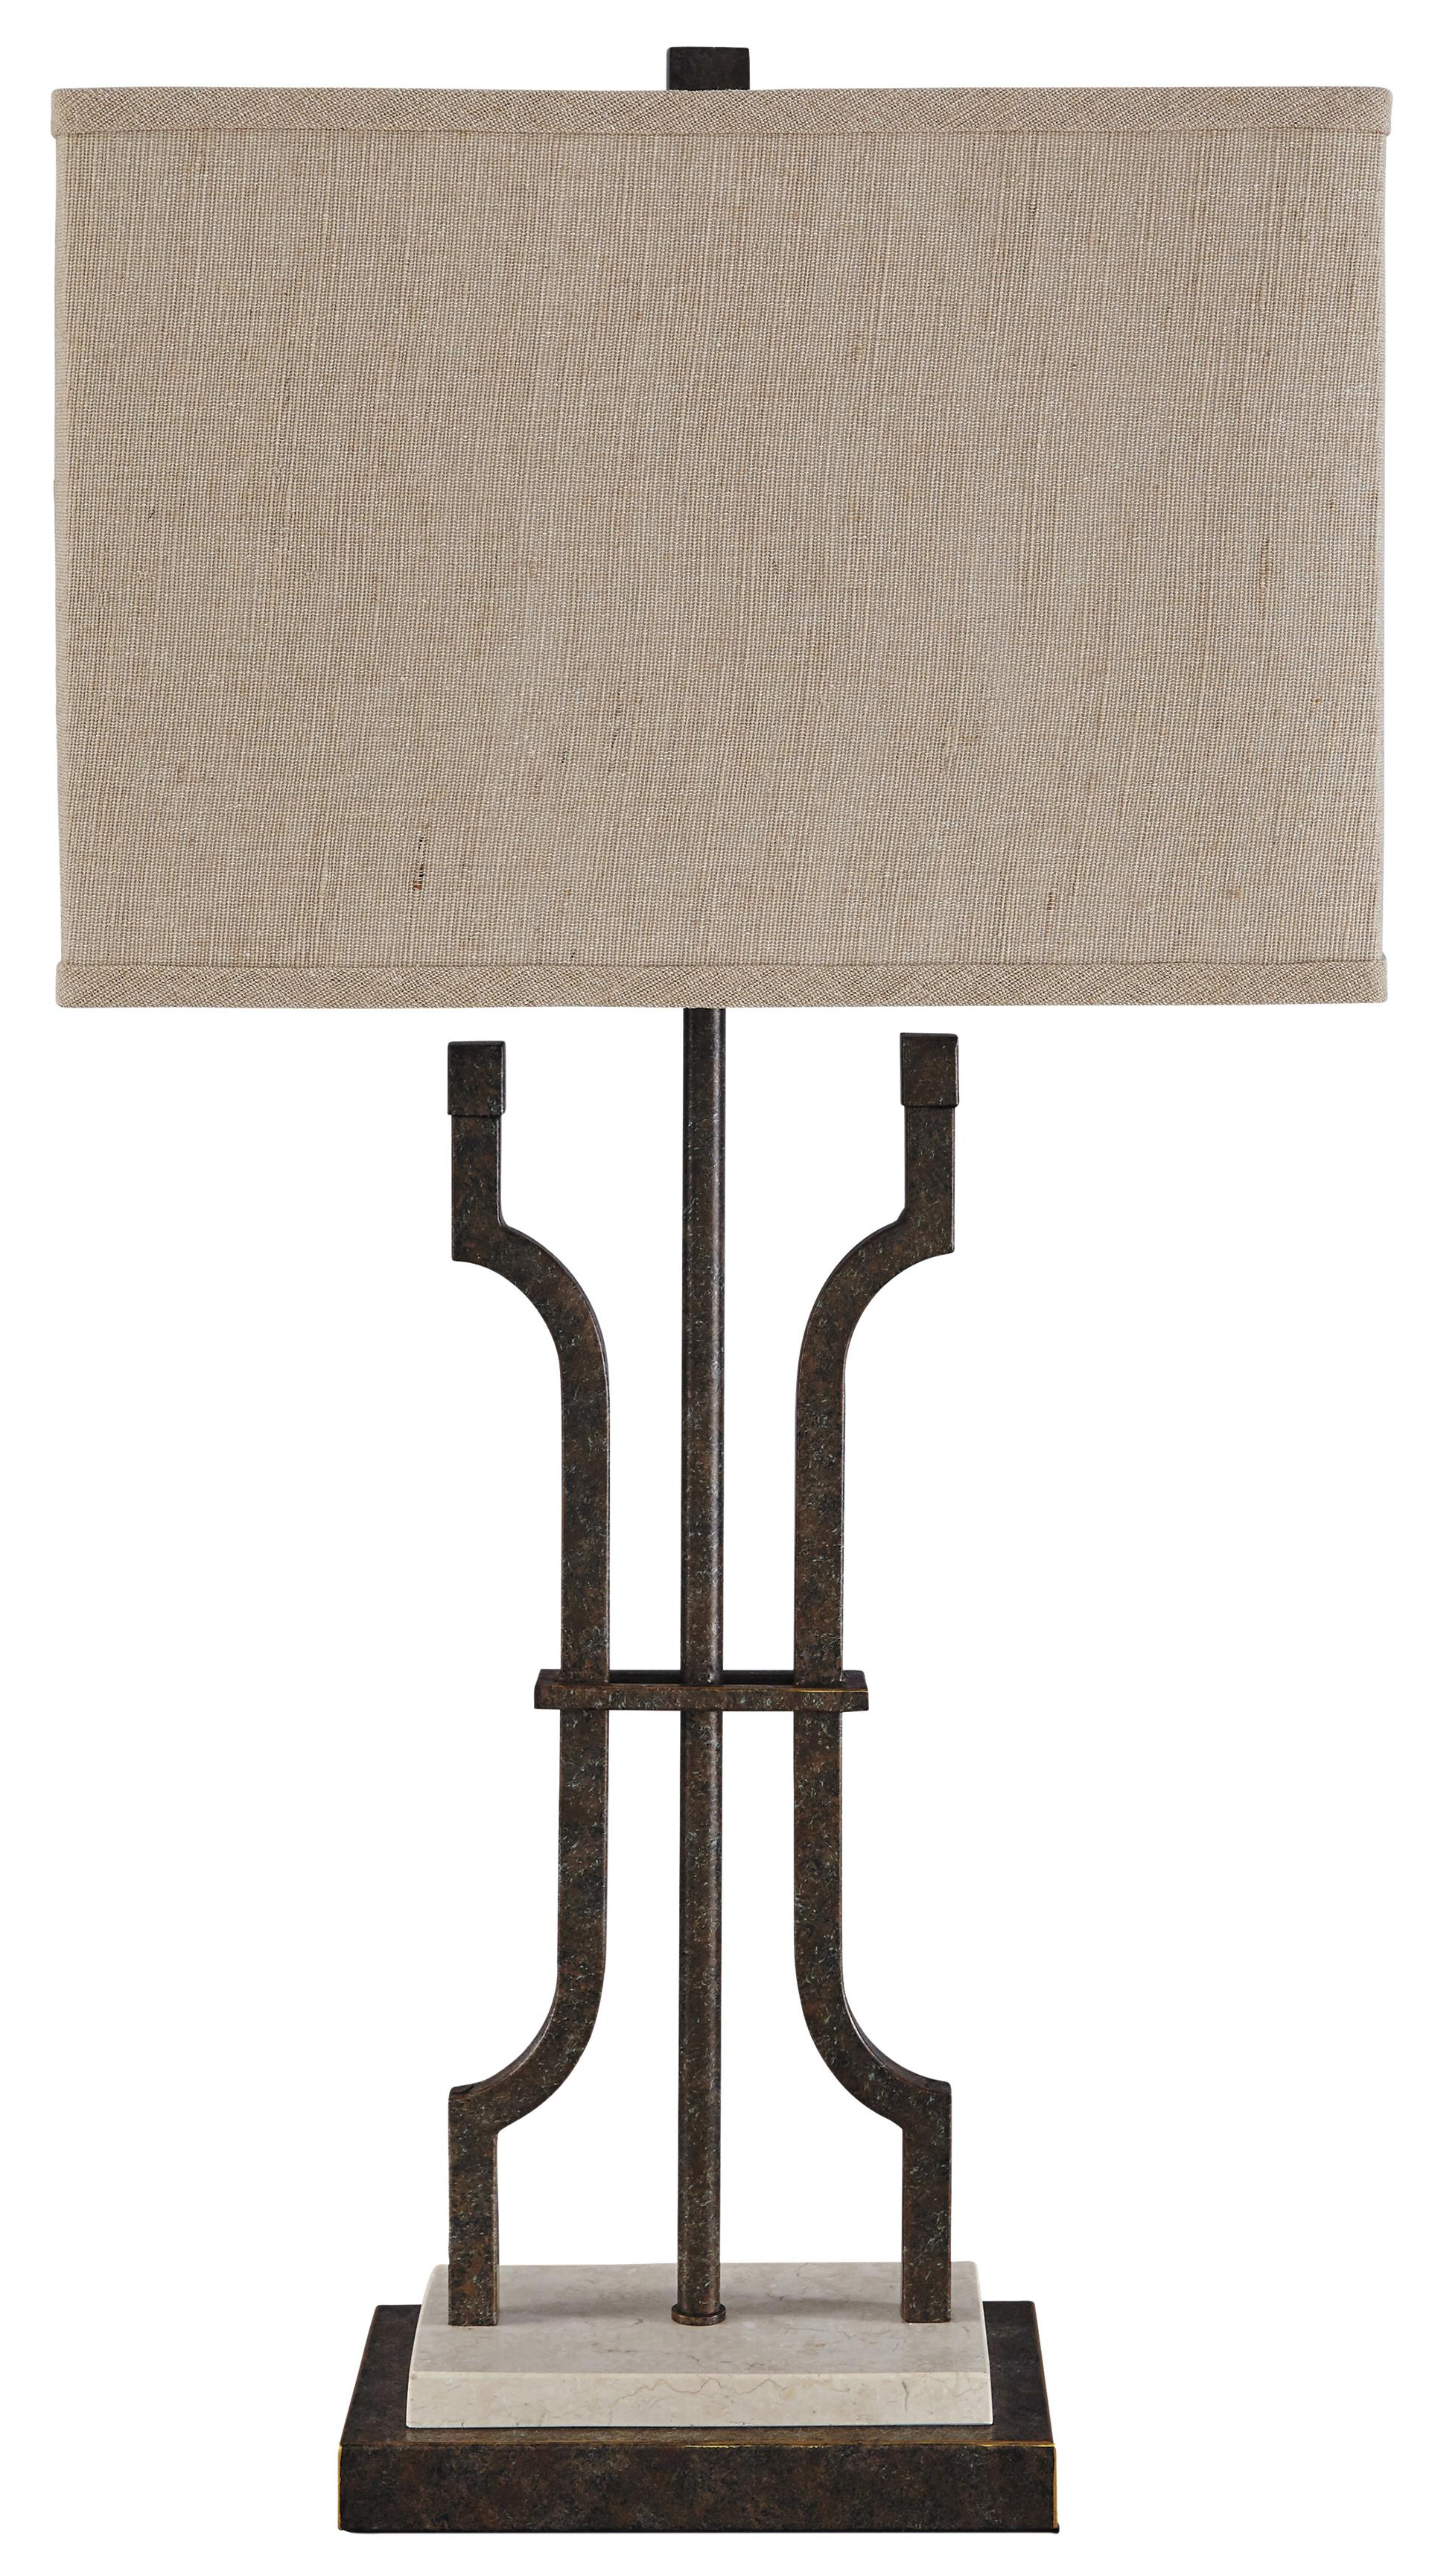 Signature Design by Ashley Lamps - Traditional Classics Malik Metal Table Lamp - Item Number: L531044